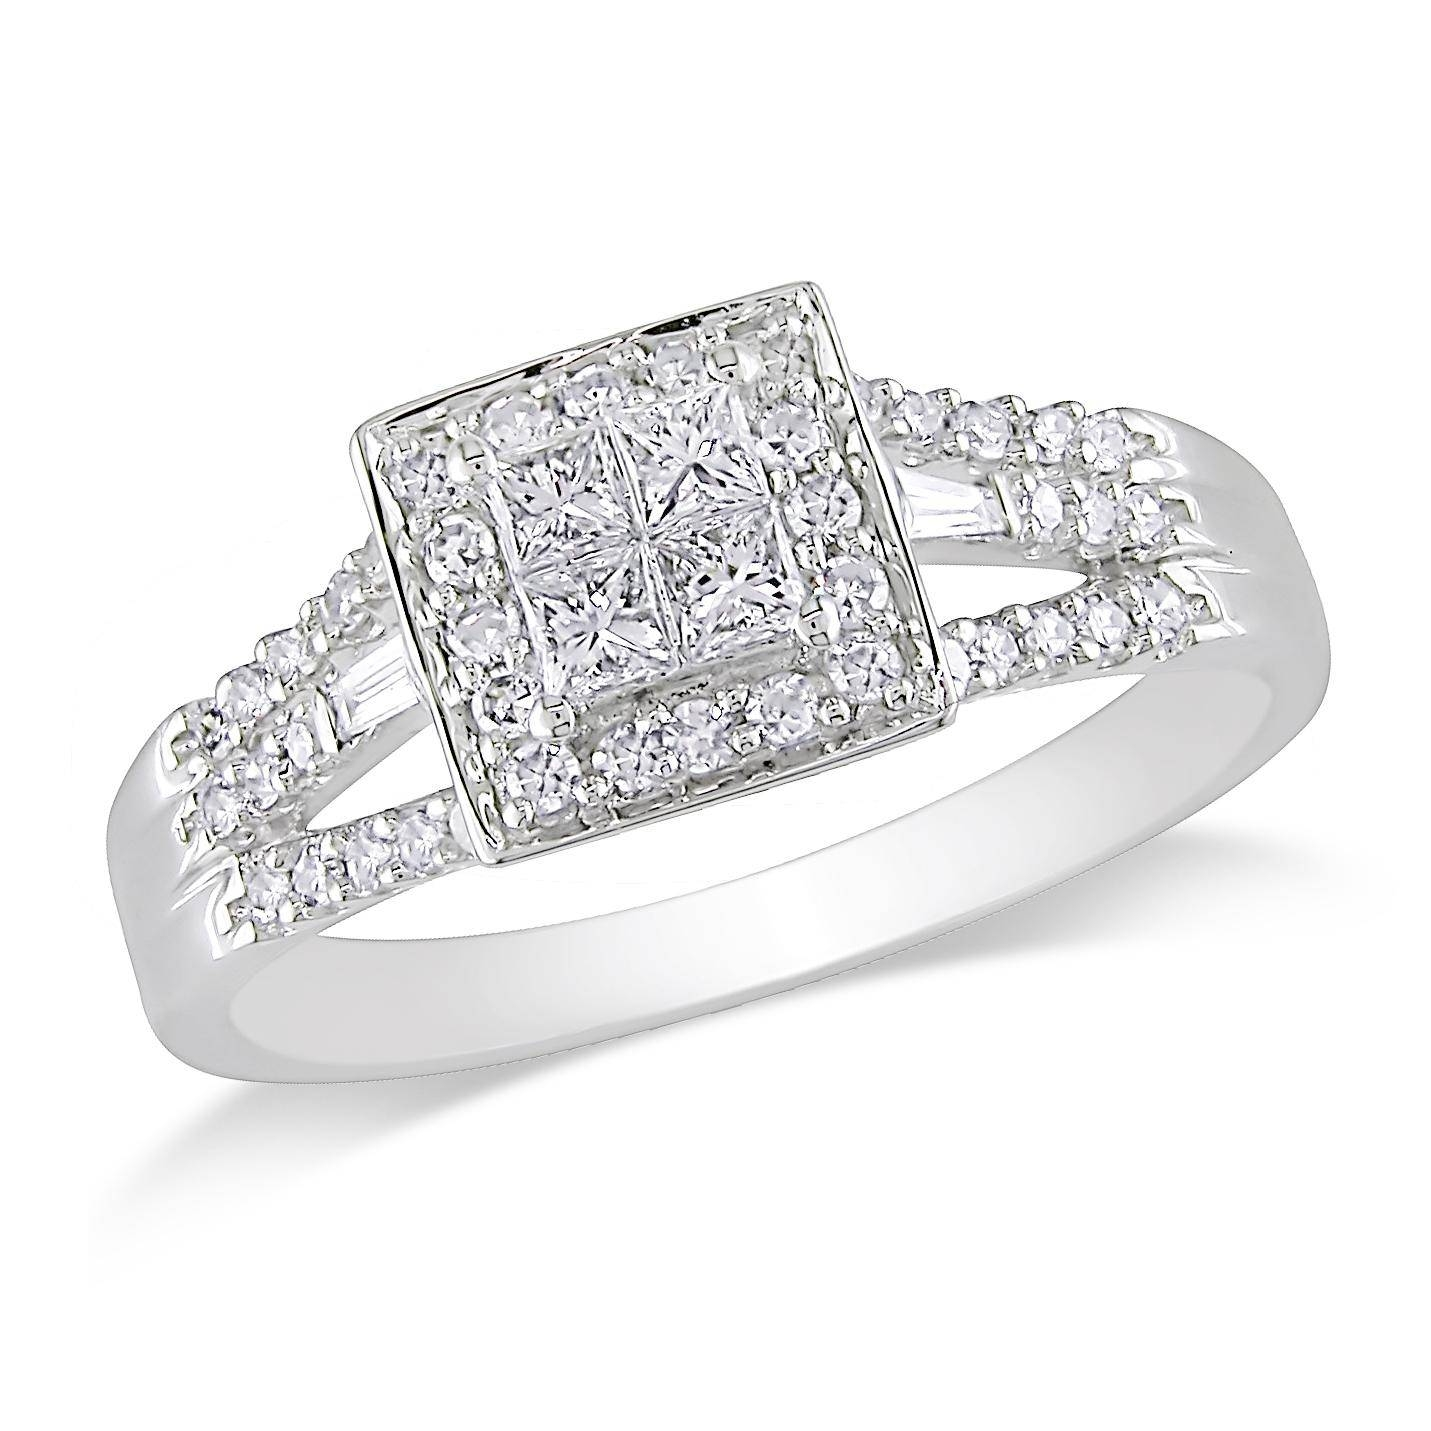 Ifec Ci – Page 127 Of 2775 – Pertaining To Walmart White Gold Engagement Rings (View 4 of 15)